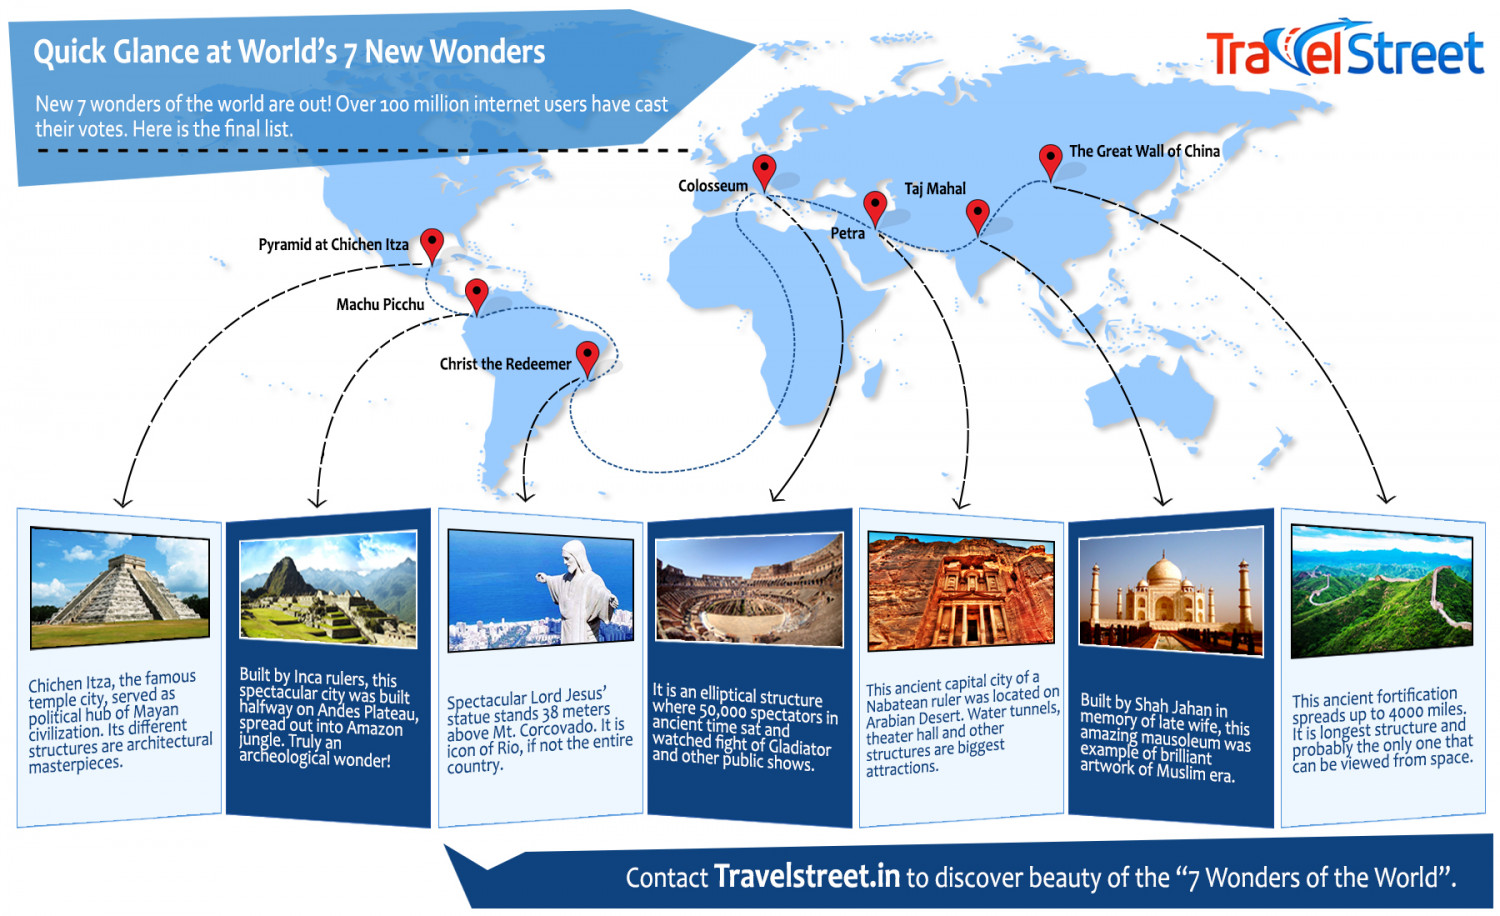 Quick Glance at World's 7 New Wonders Infographic